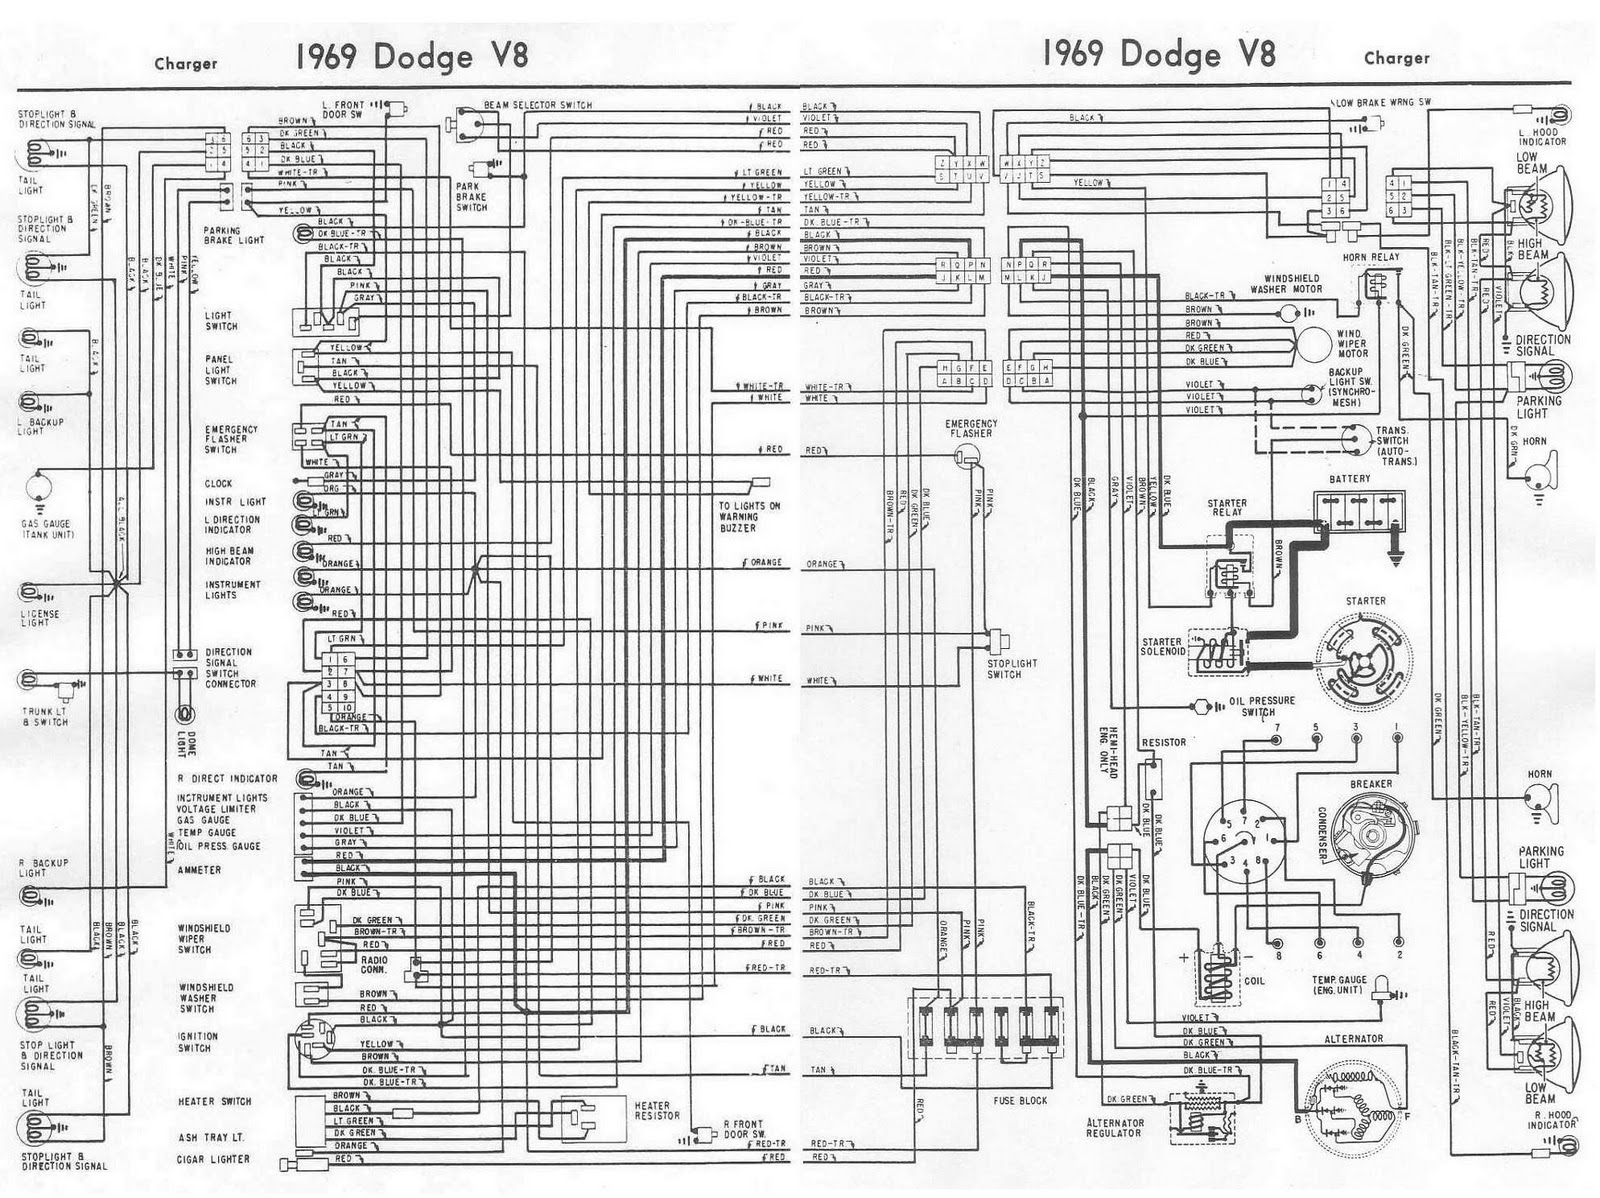 Dodge Electronic Ignition Wiring Diagram 2002 Ford Windstar Charger 1969 V8 Complete Electrical